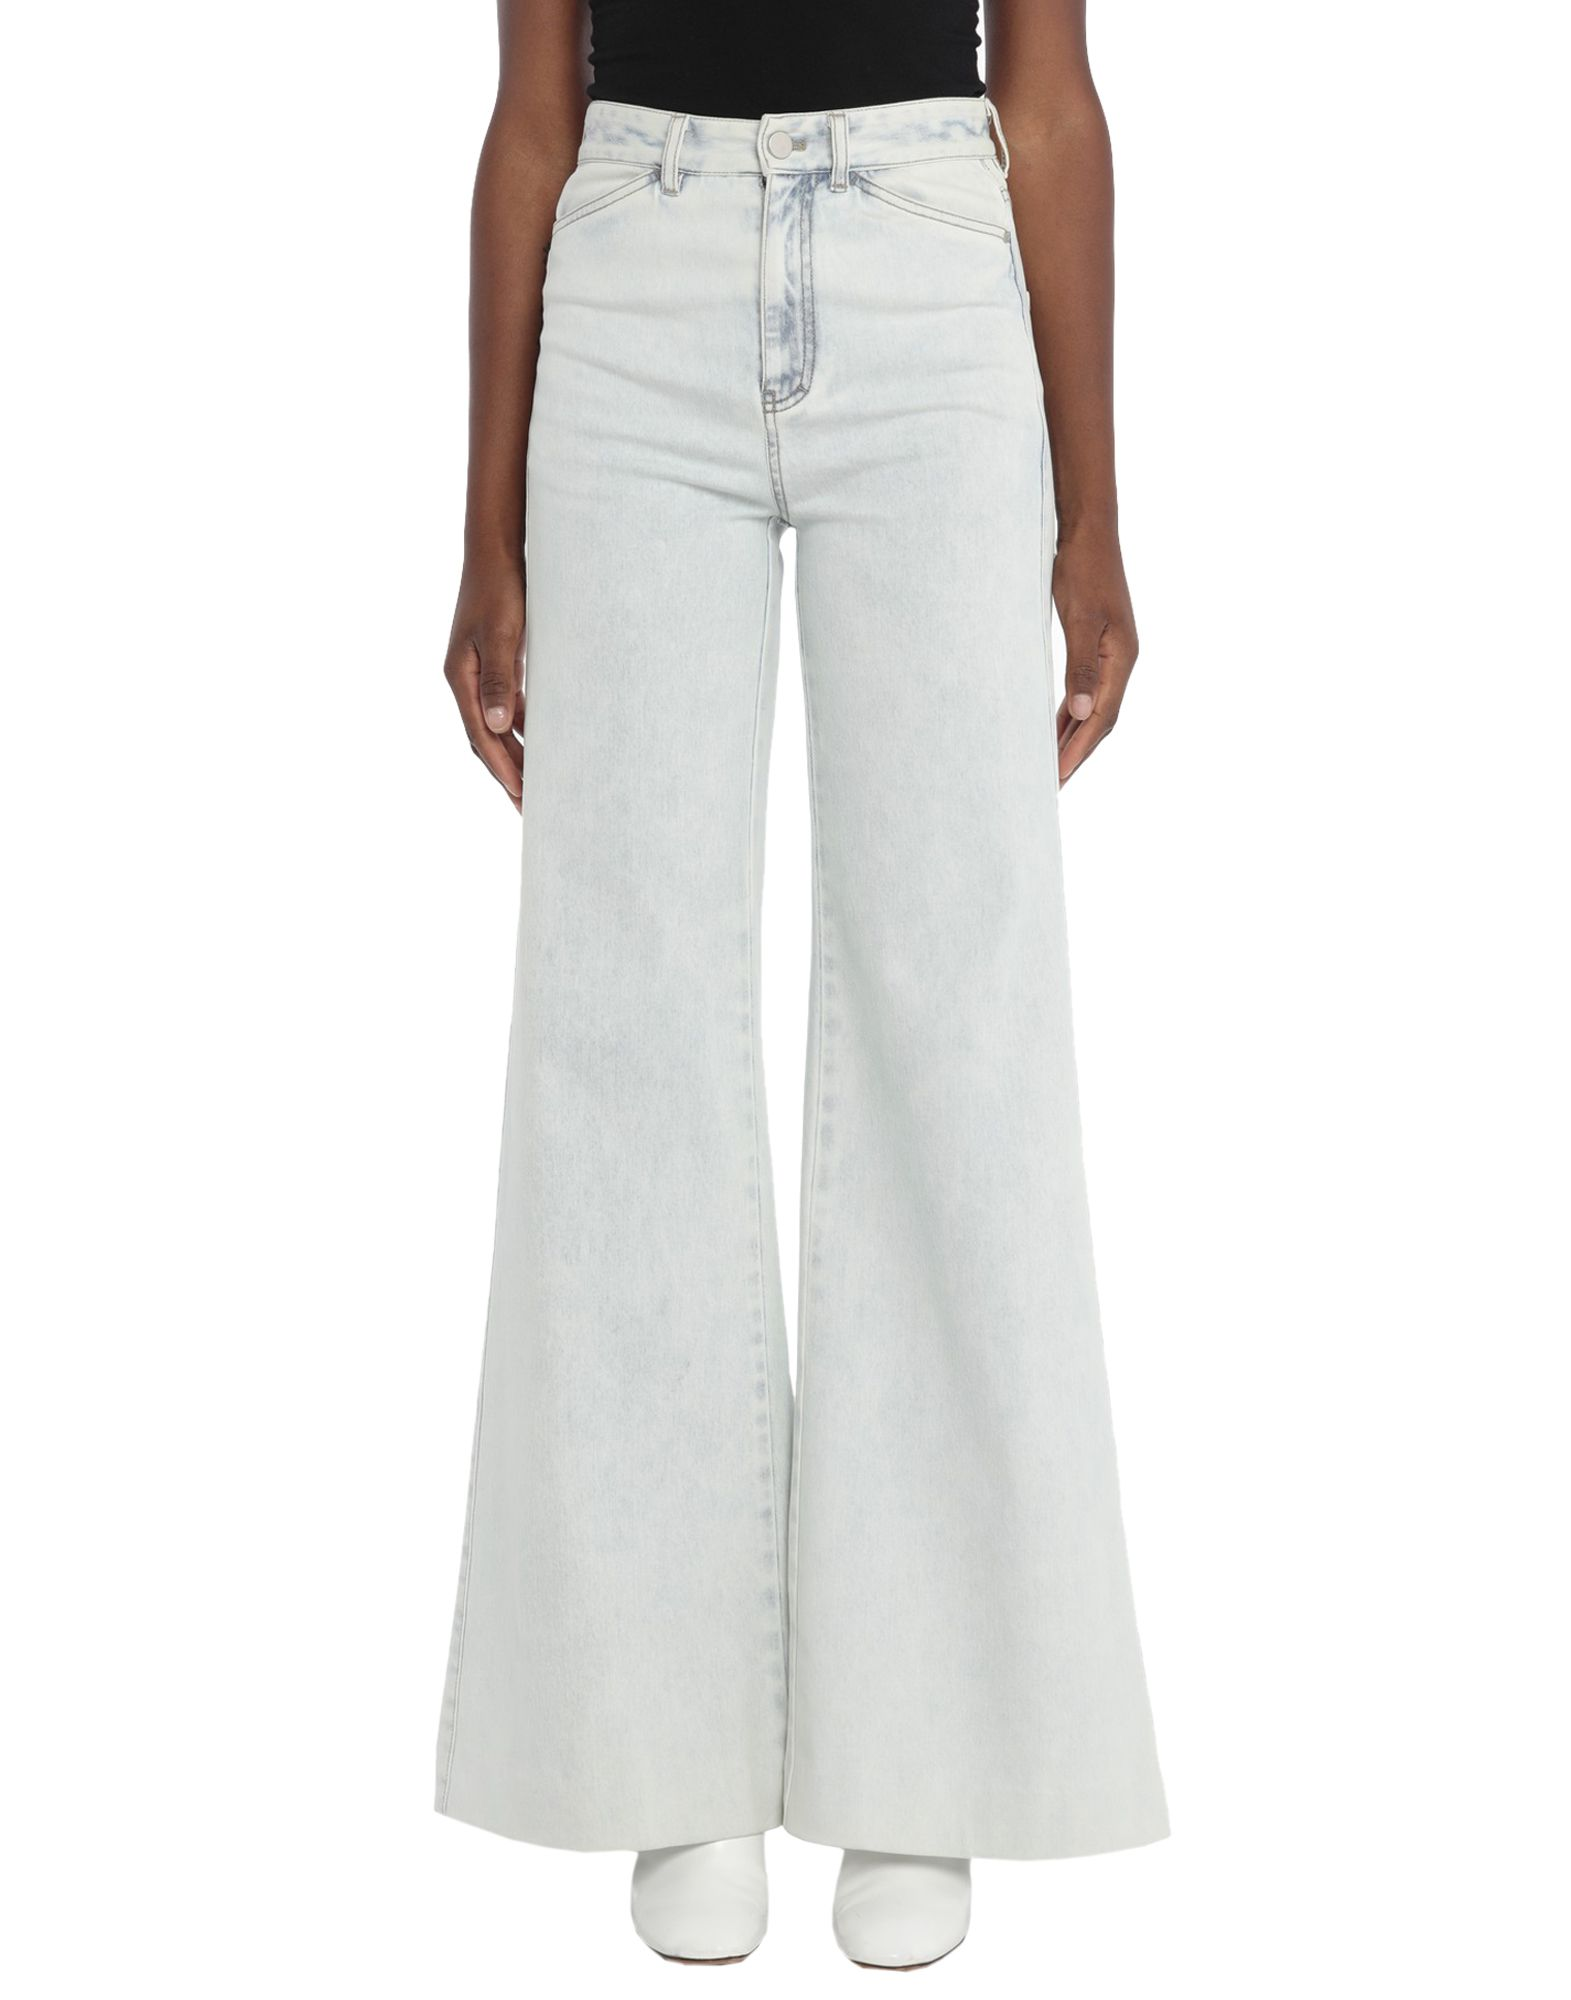 DOROTHEE SCHUMACHER Denim pants - Item 42806786